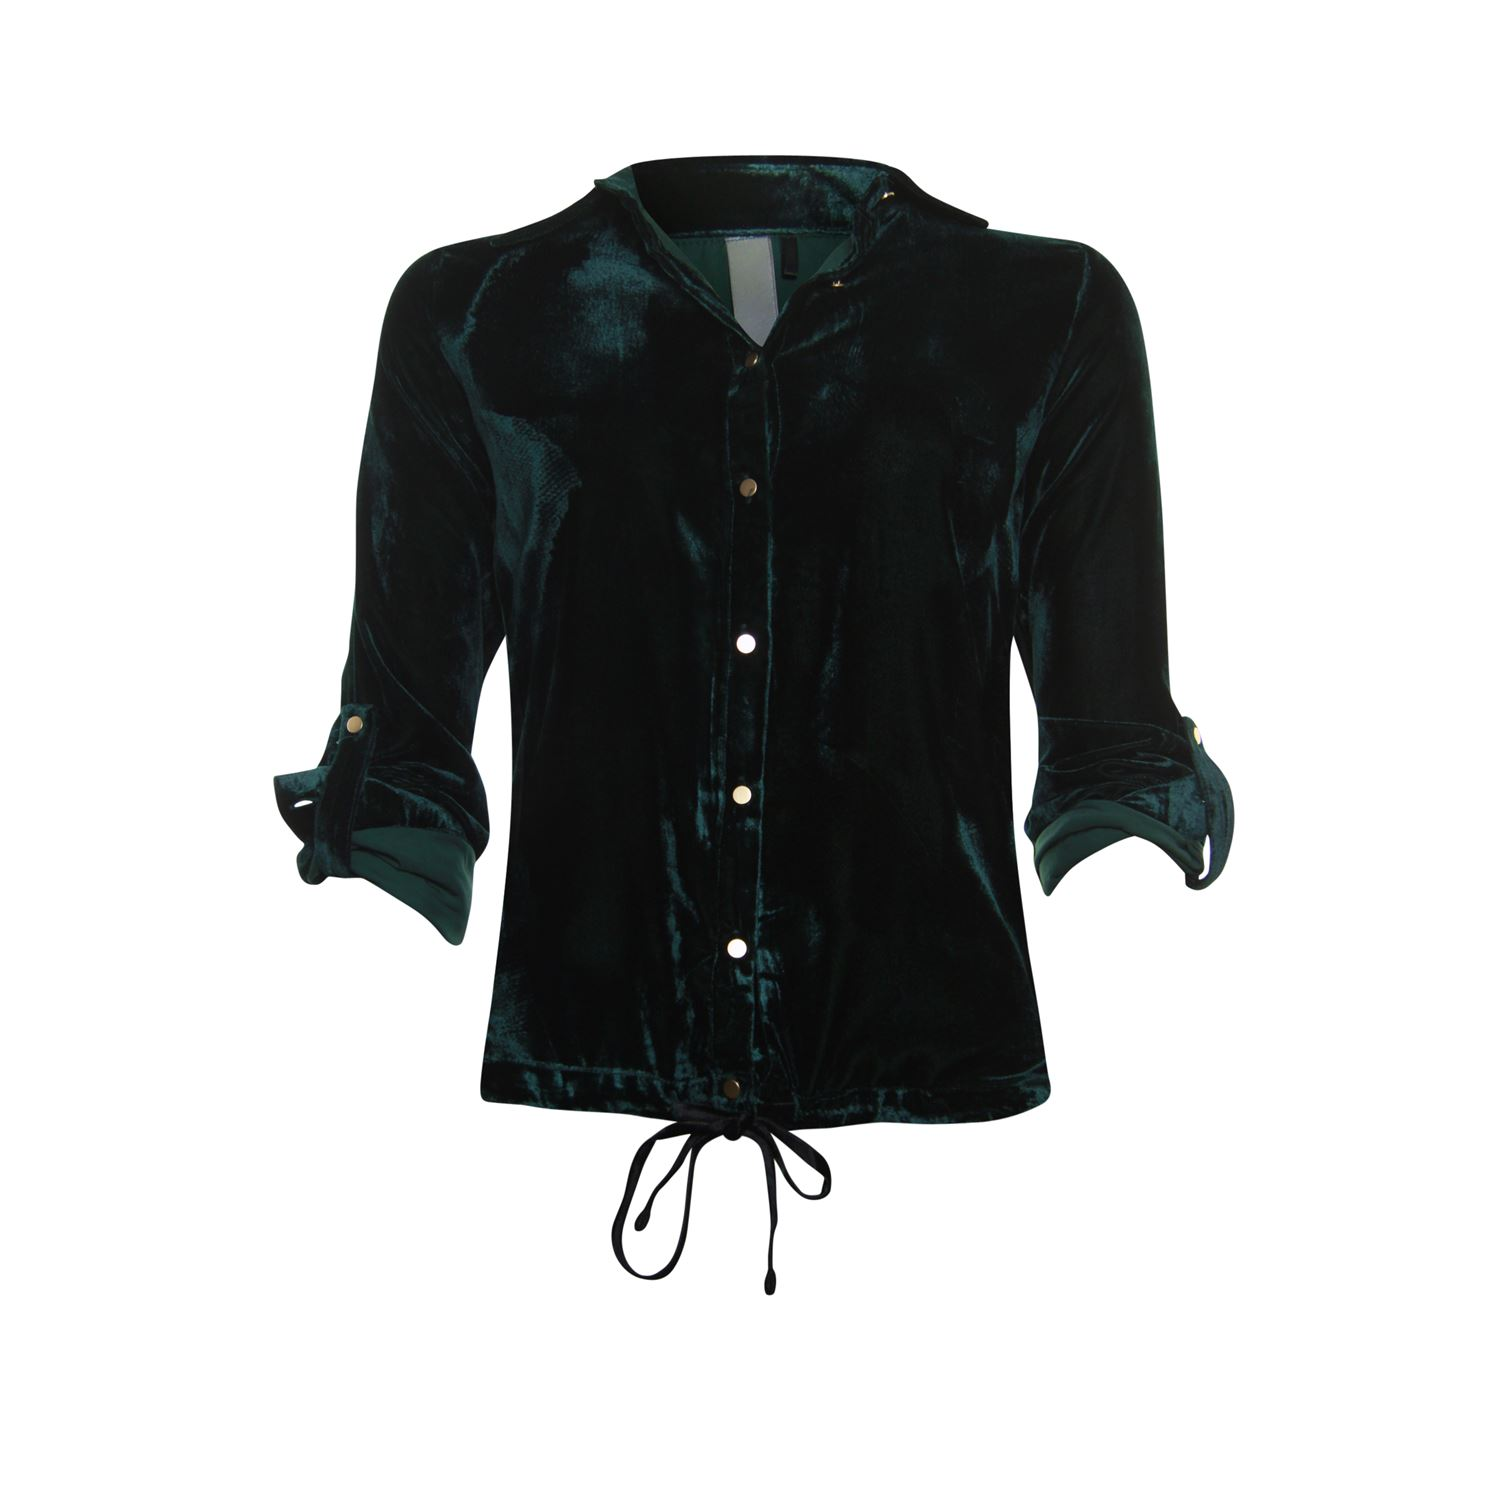 Image of Blouse velvet